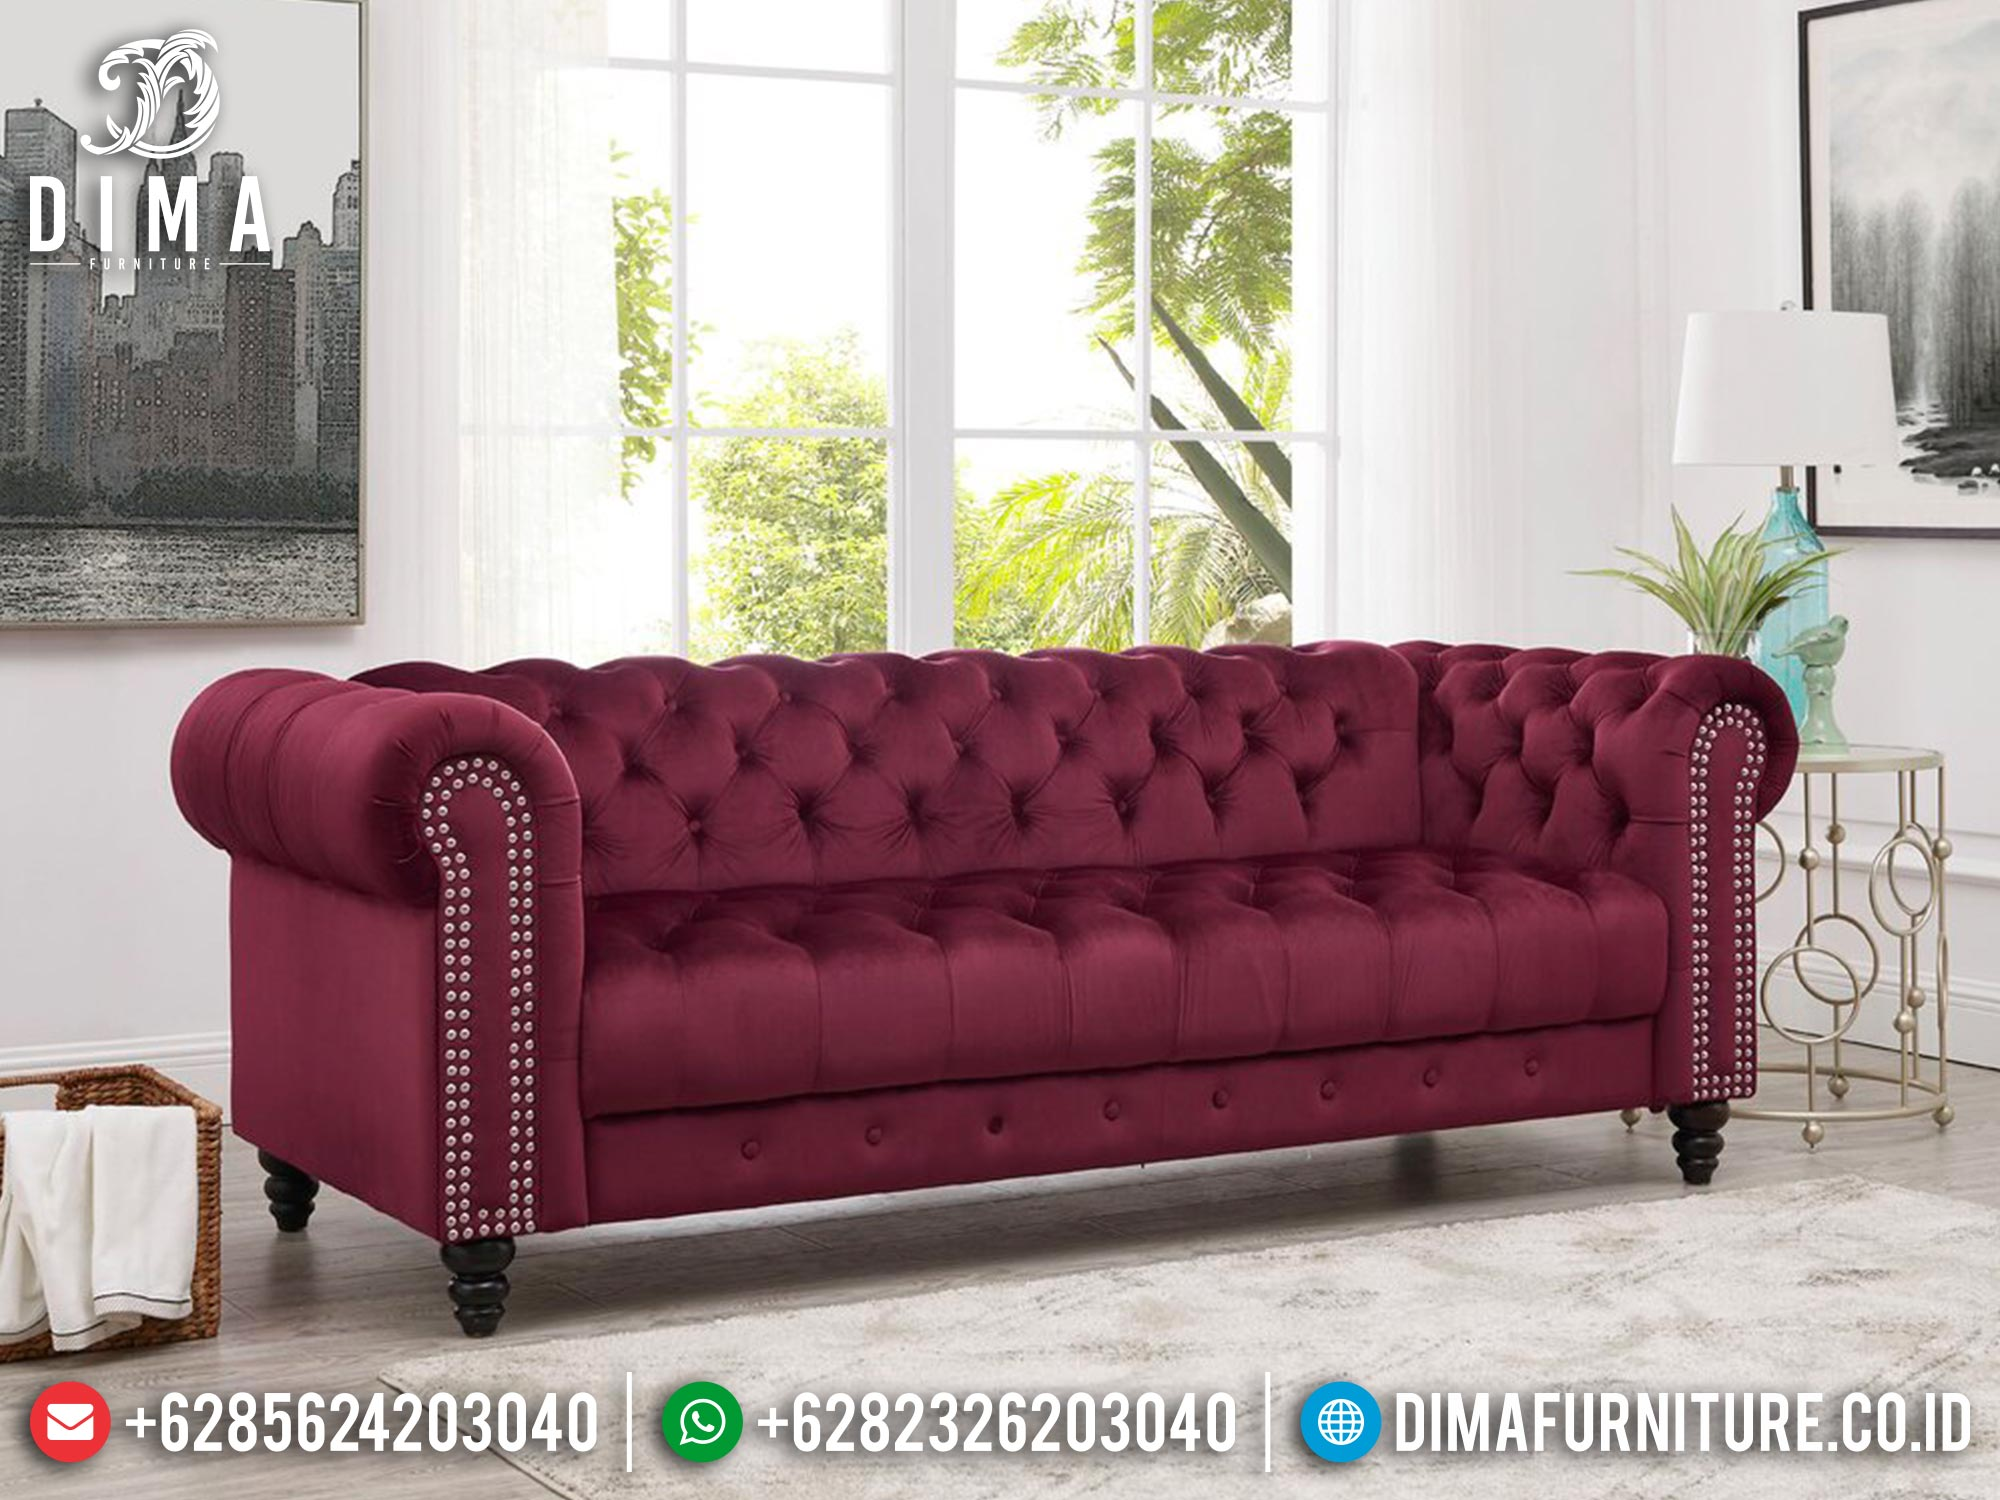 Sofa Tamu Minimalis Jepara Red Jaguar Super Sale DF-1421